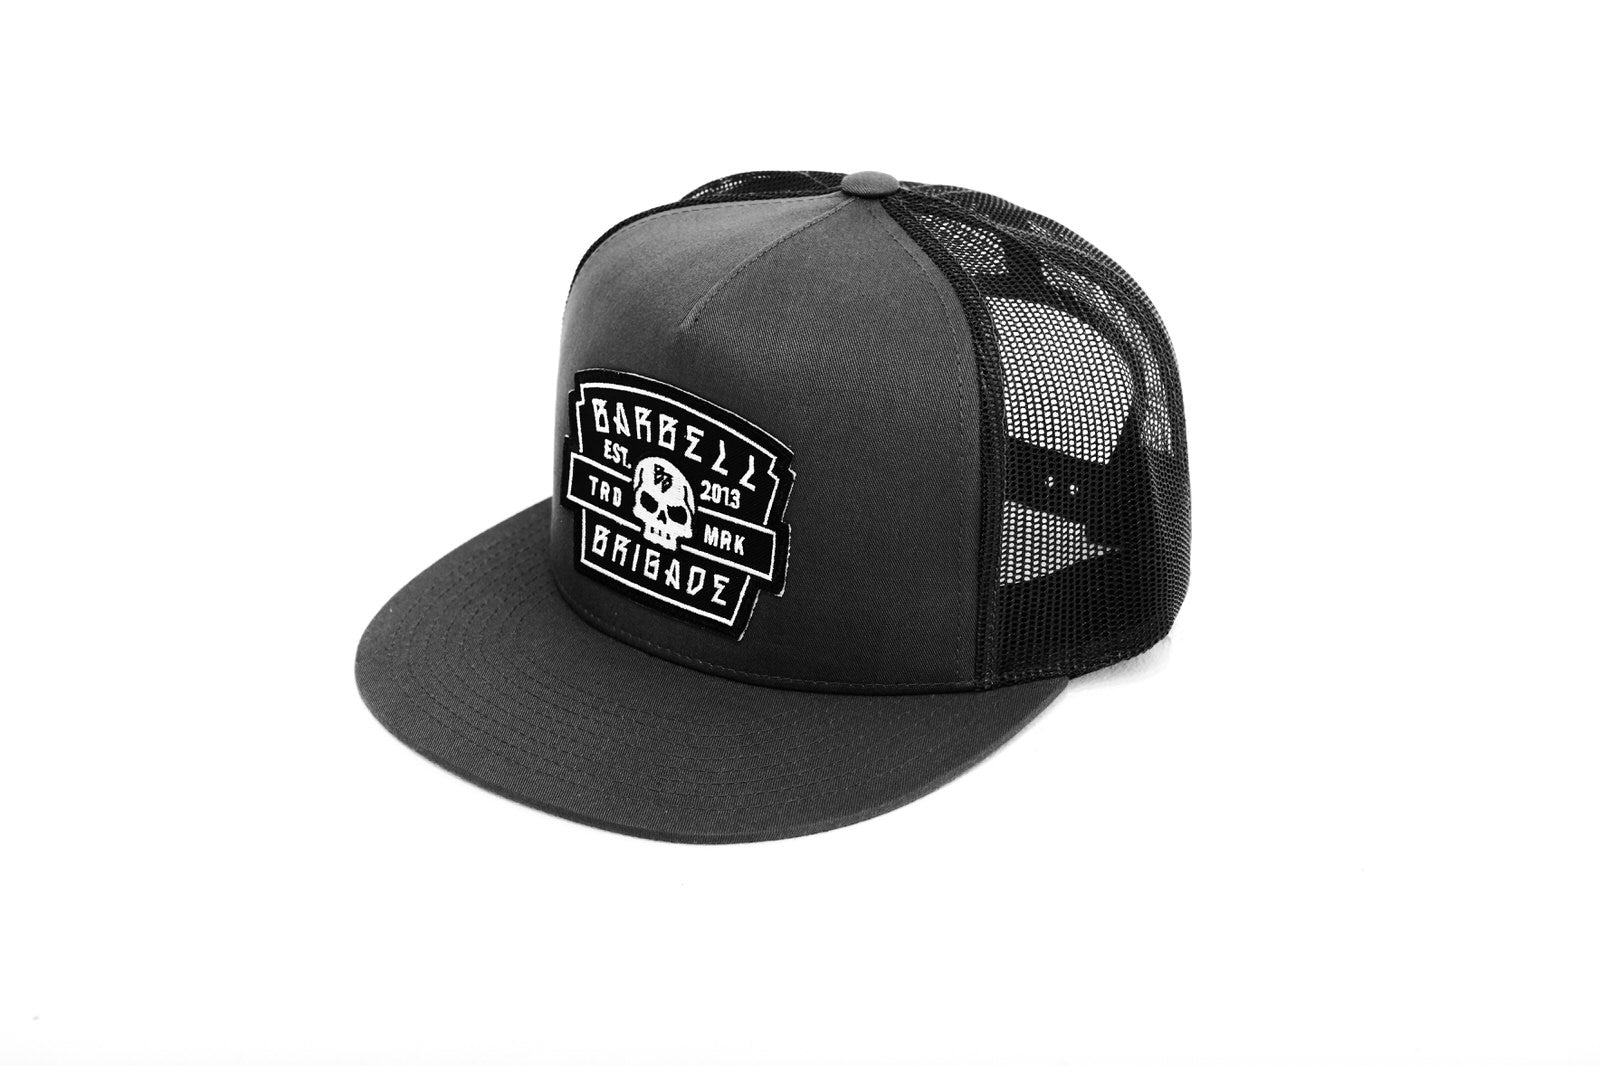 Leader - Trucker Hat (Charcoal)